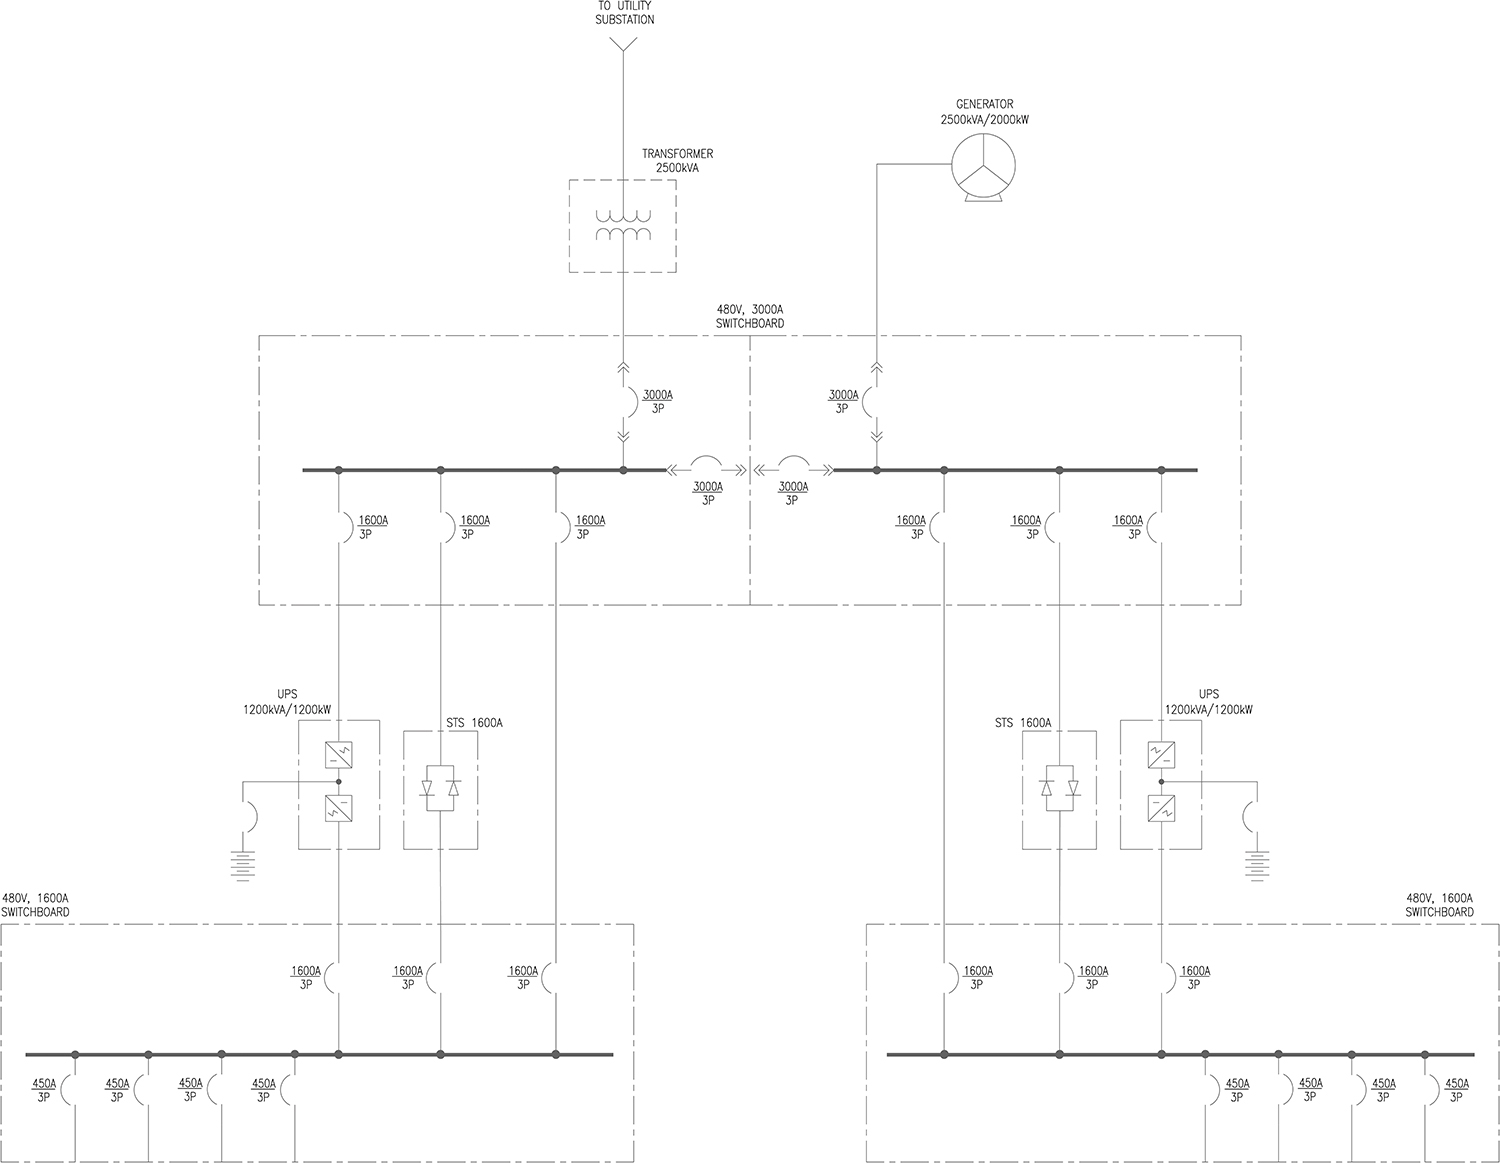 schematic-design-single-line-diagram